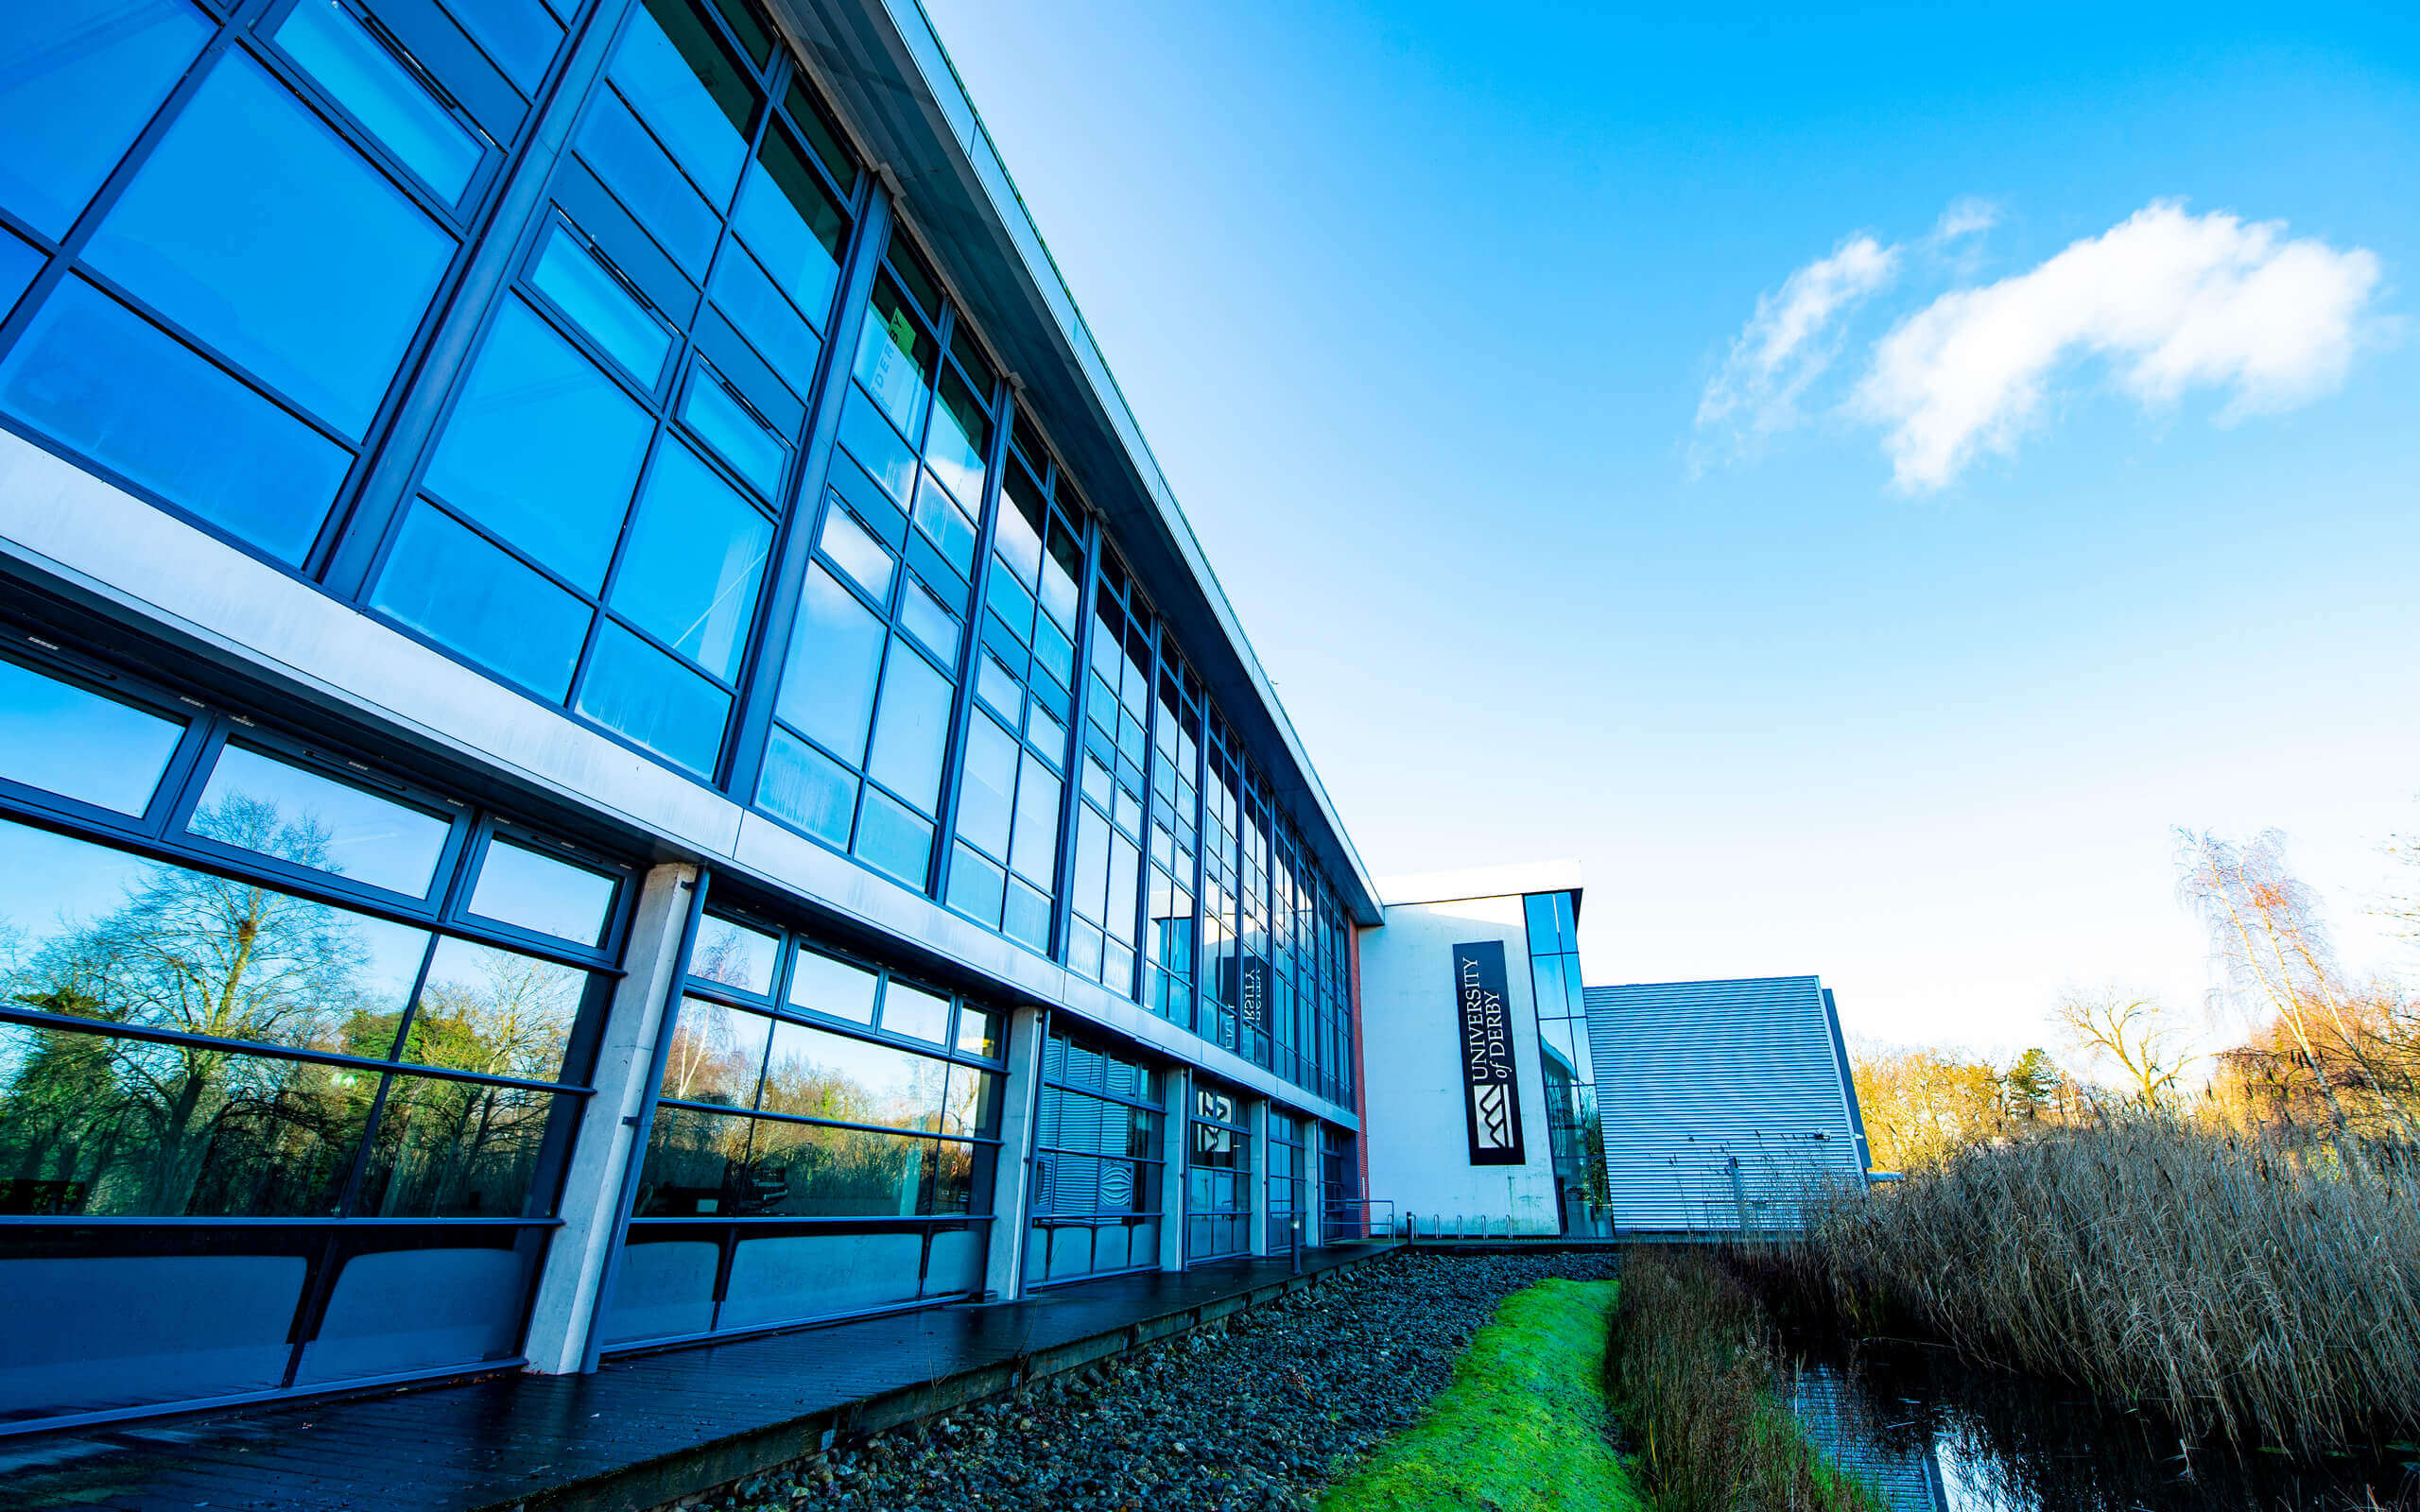 Markeaton Street campus, side view of the central building